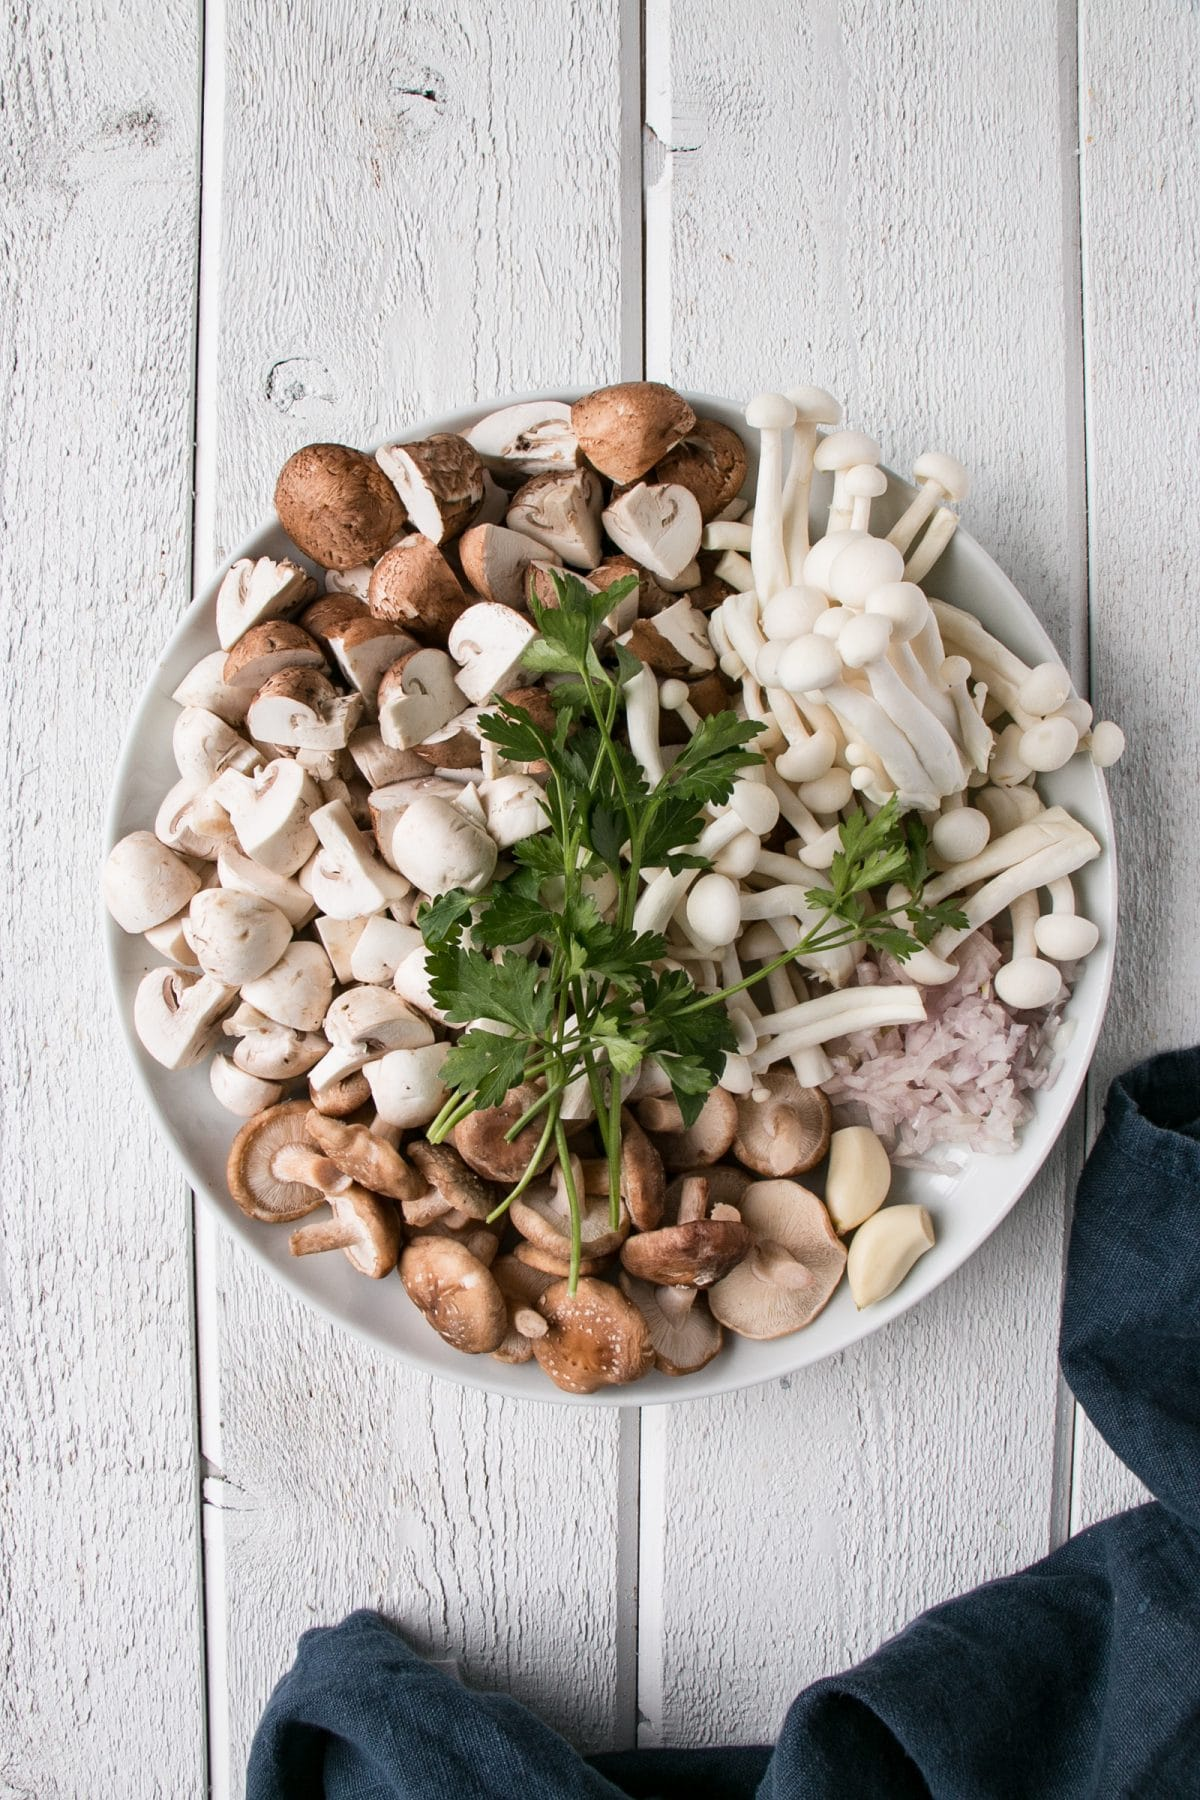 bowl packed with various types of mushrooms, shallots, garlic, and parsley